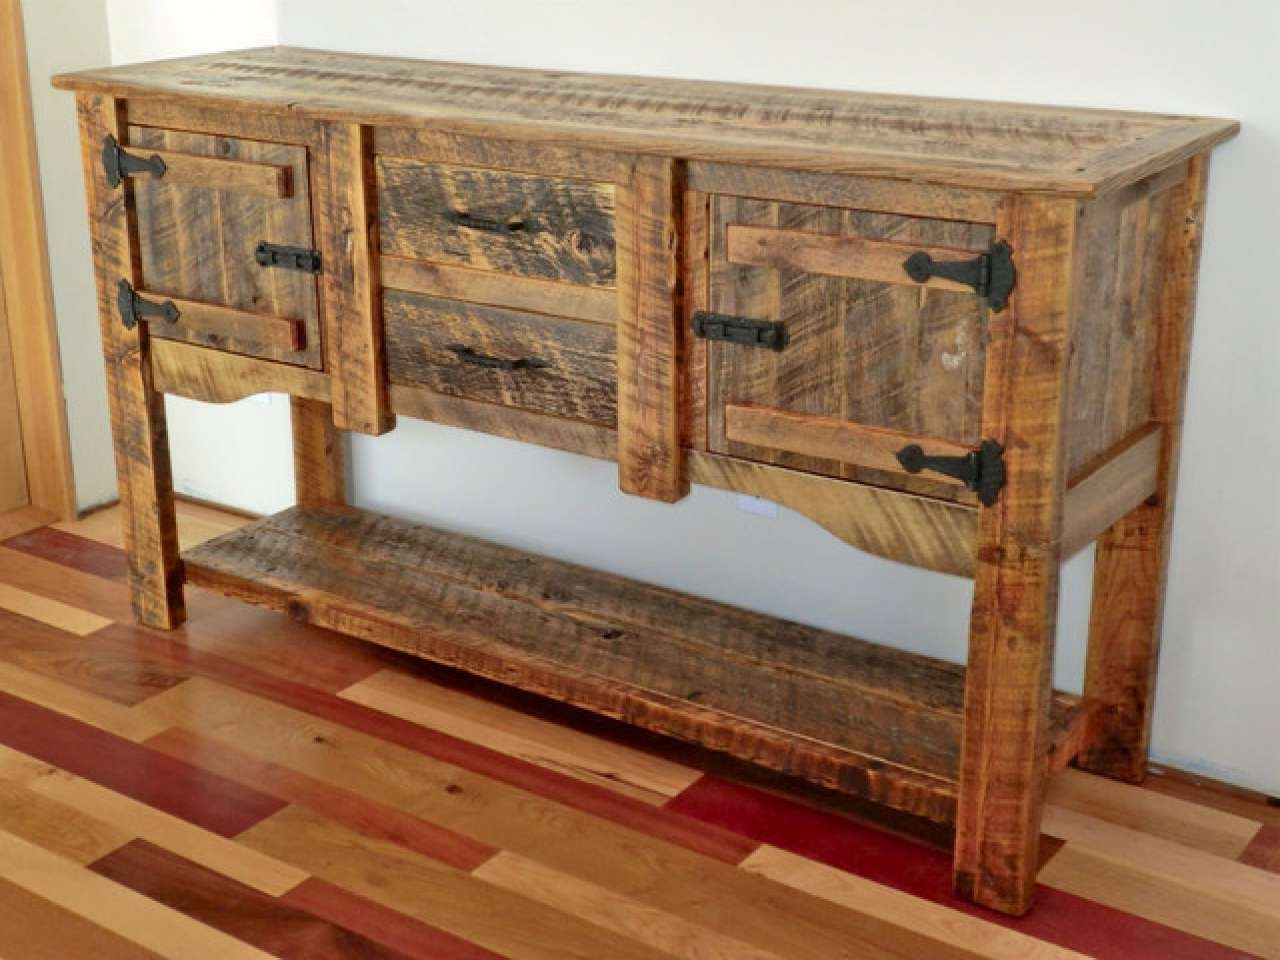 Pine Wood Kitchens, Ideas For Painted Buffet Sideboards Rustic Throughout Rustic Sideboards And Buffets (View 20 of 20)